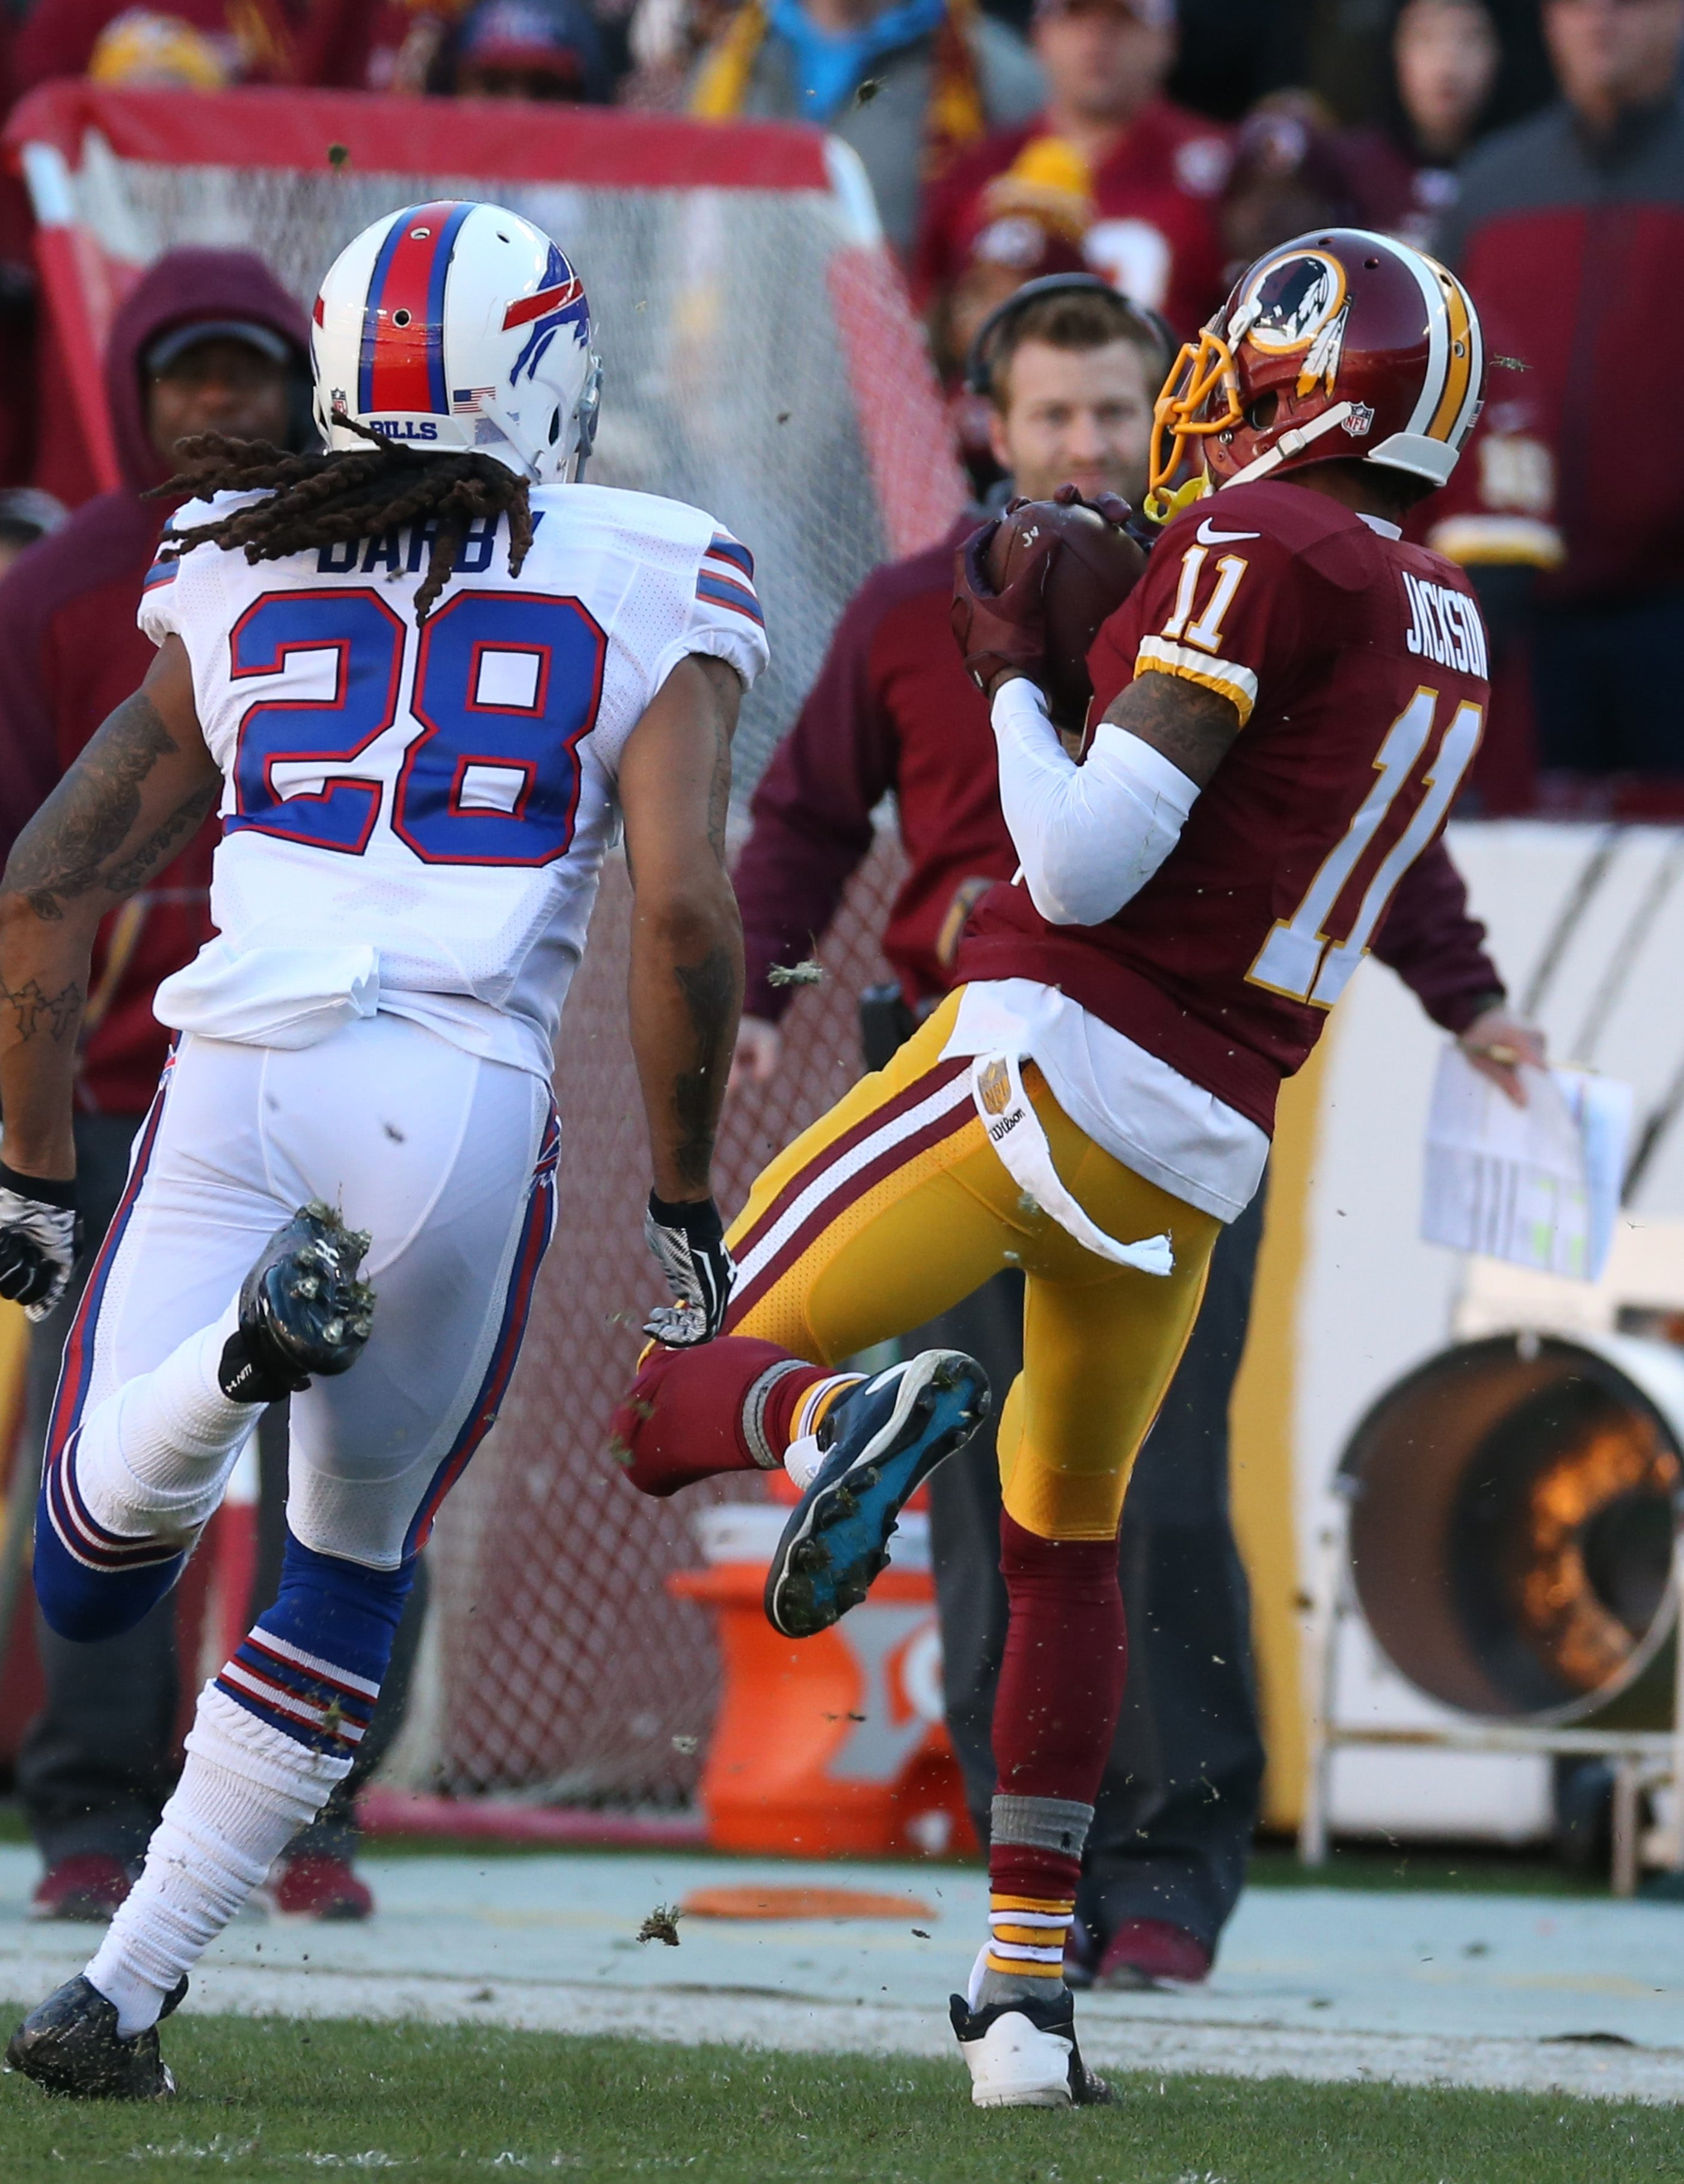 Redskins wide receiver DeSean Jackson beats Bills cornerback Ronald Darby for a first down in the first quarter.